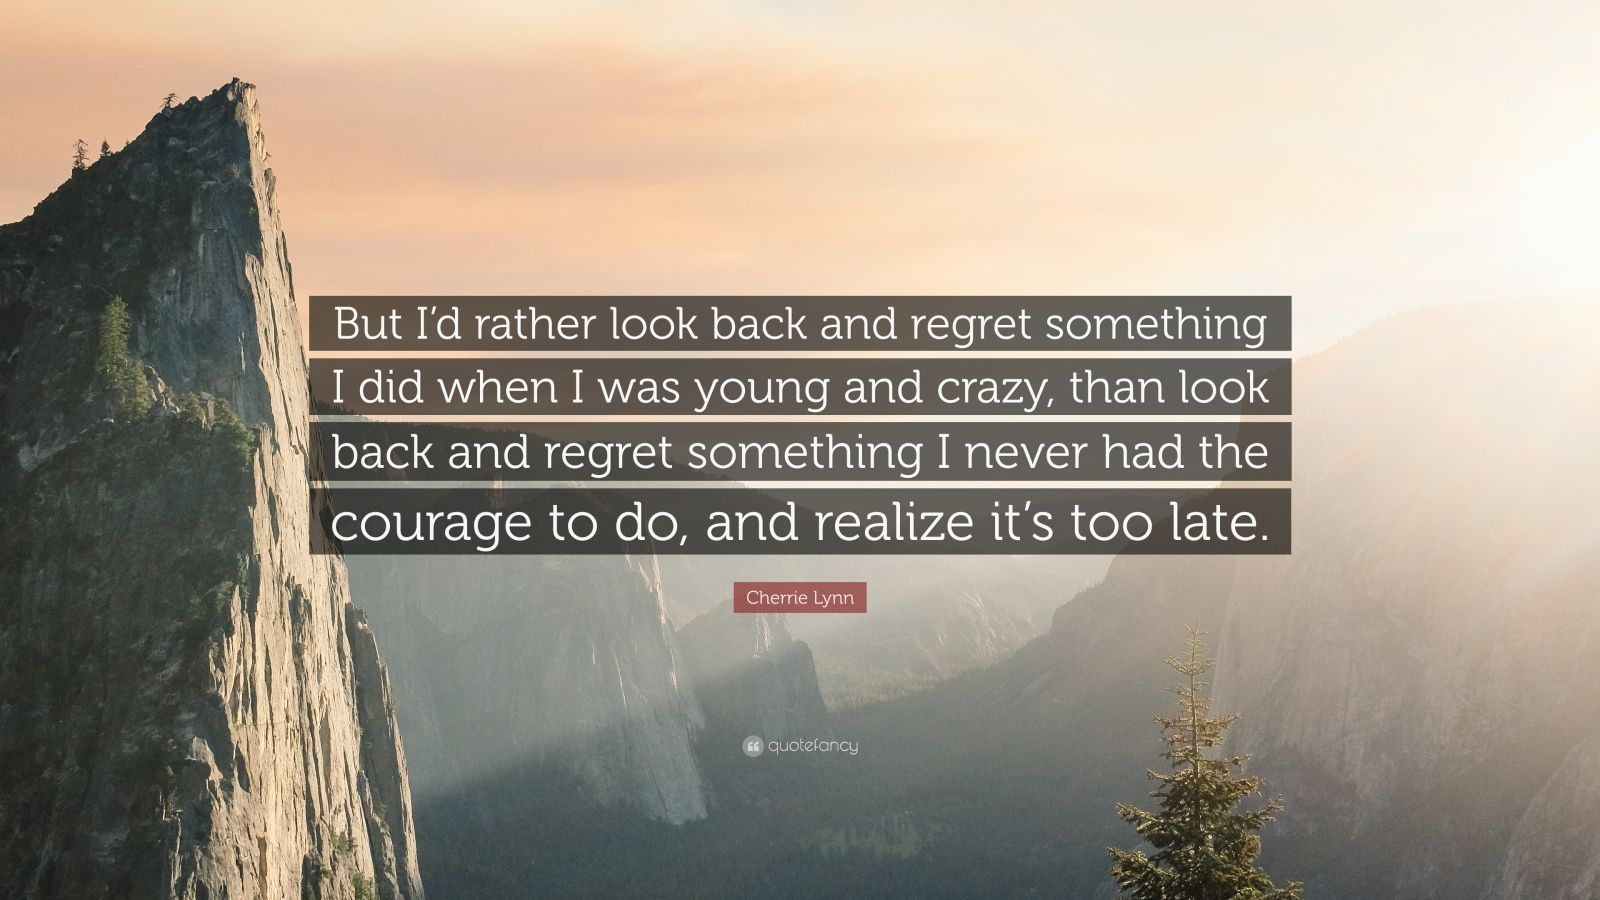 """Cherrie Lynn Quote: """"But I'd rather look back and regret something I did when I was young and crazy, than look back and regret something I never had the courage to do, and realize it's too late."""""""